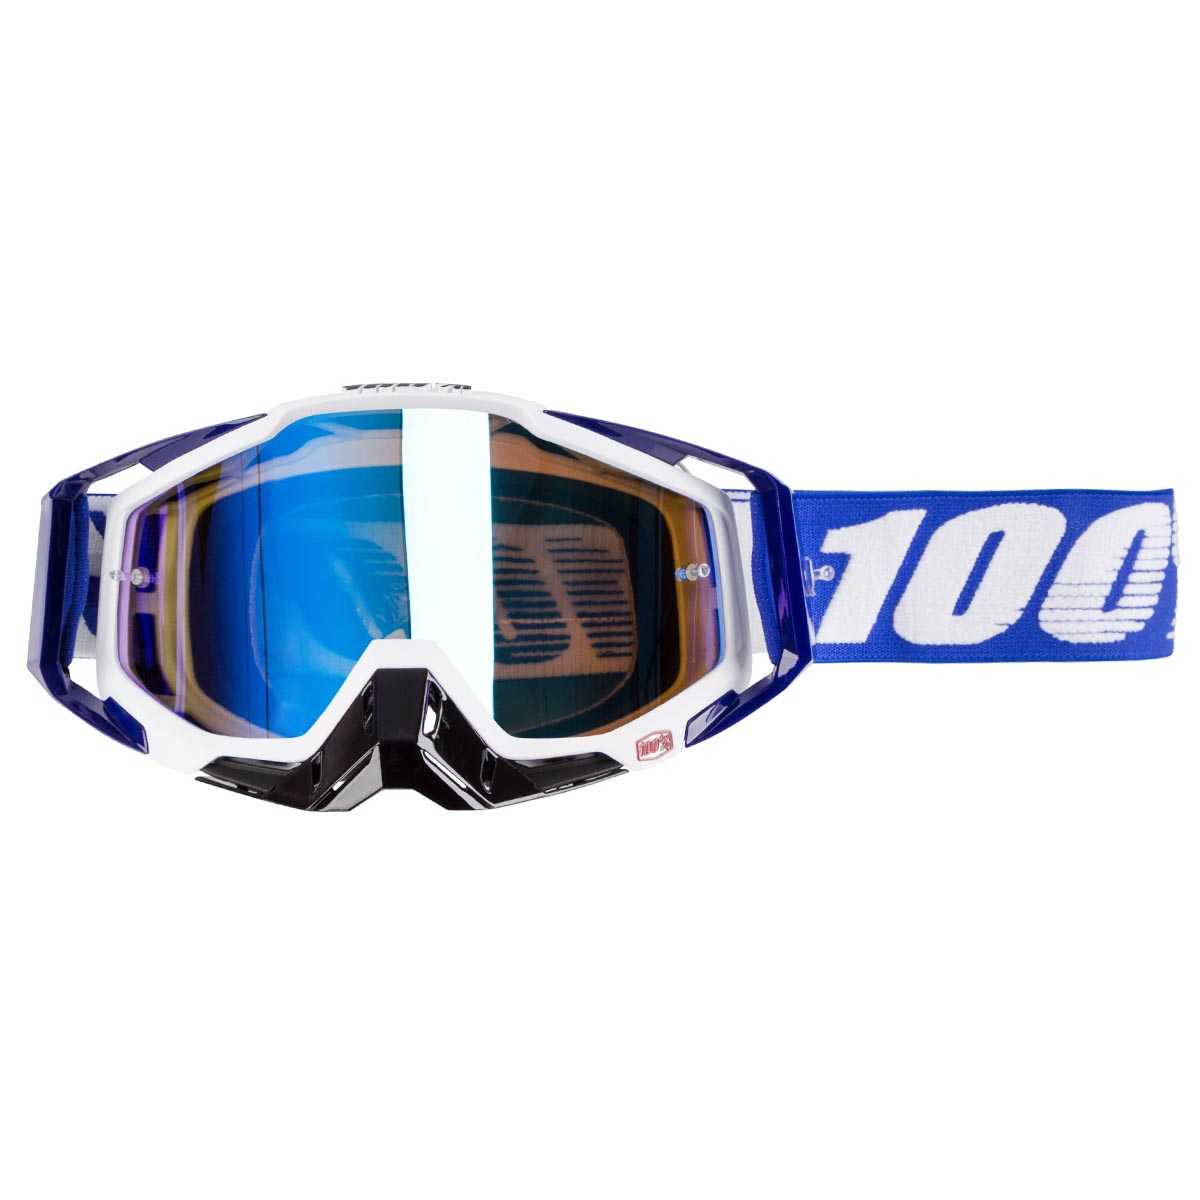 100% Crossbrille The Racecraft Cobalt Blue - Blau verspiegelt Anti-Fog